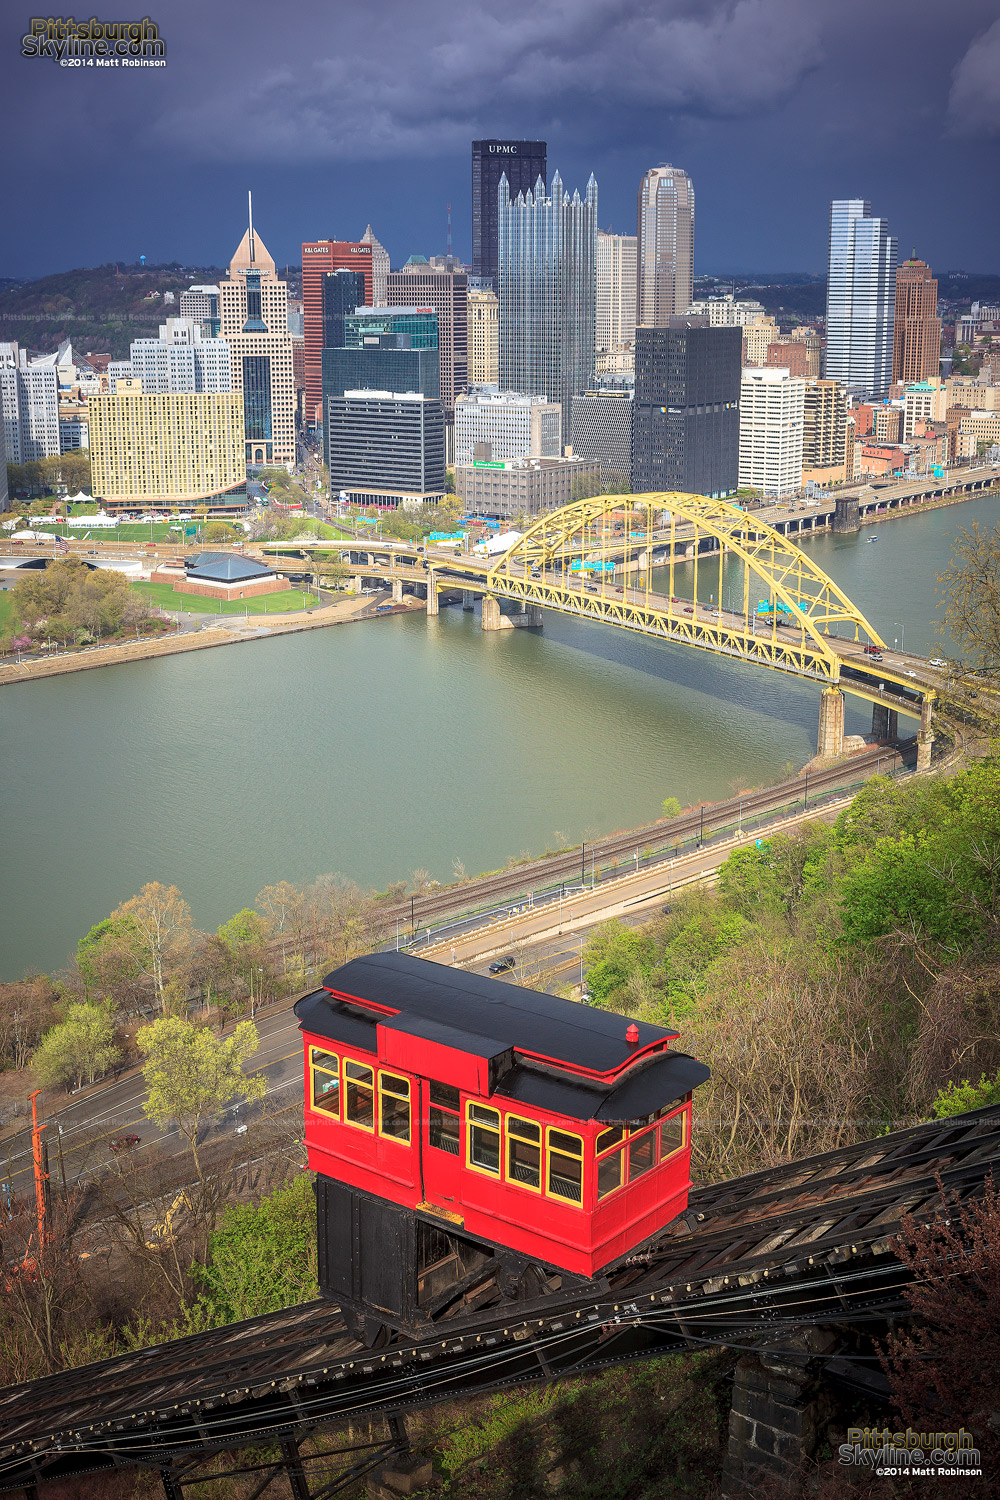 Downtown Pittsburgh with Duquesne Incline